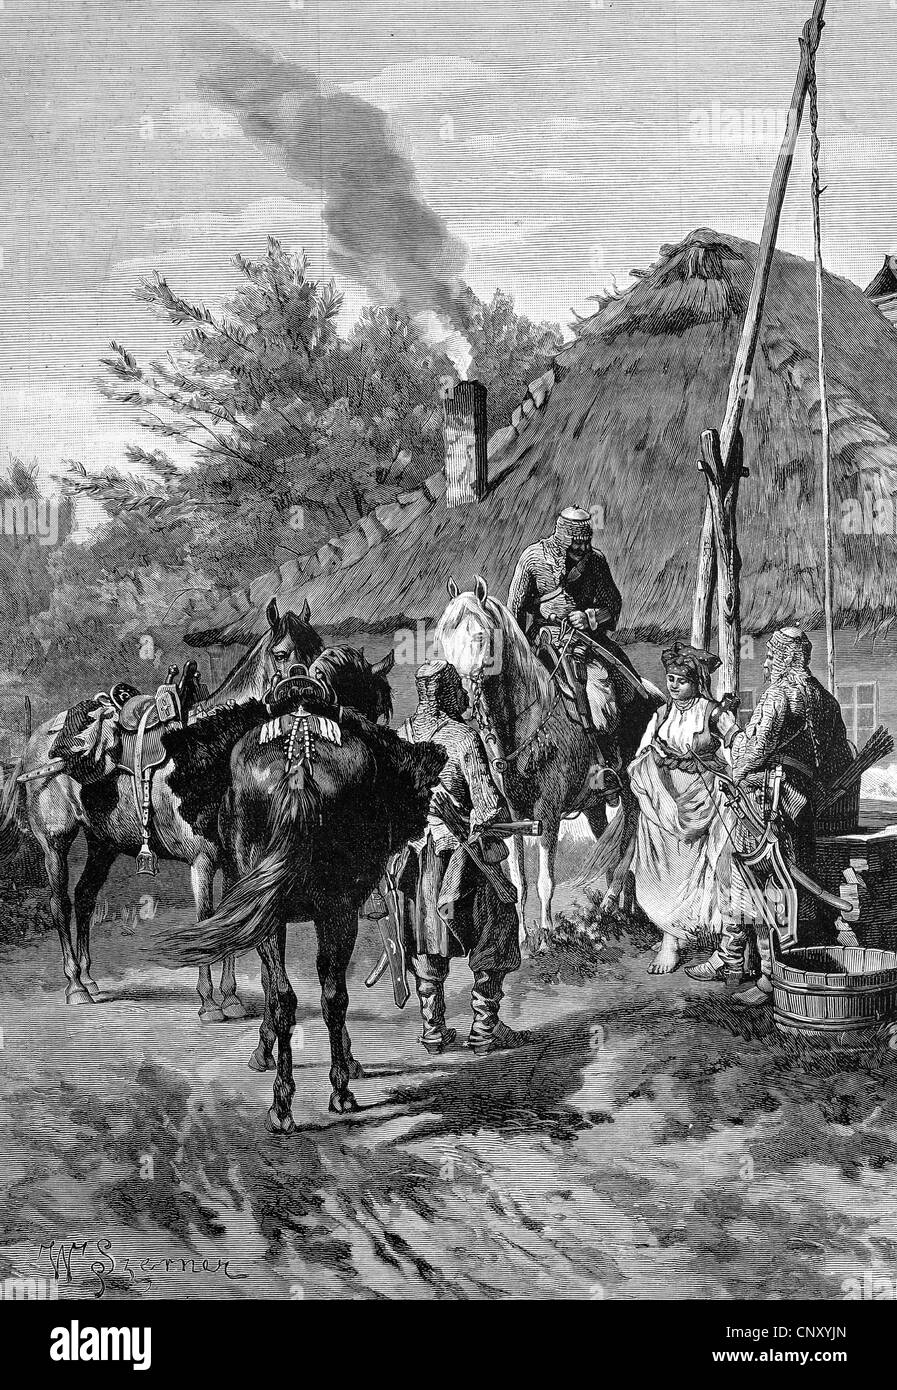 Prussian soldiers in the 13th century at a village well, historic wood engraving, about 1888 - Stock Image